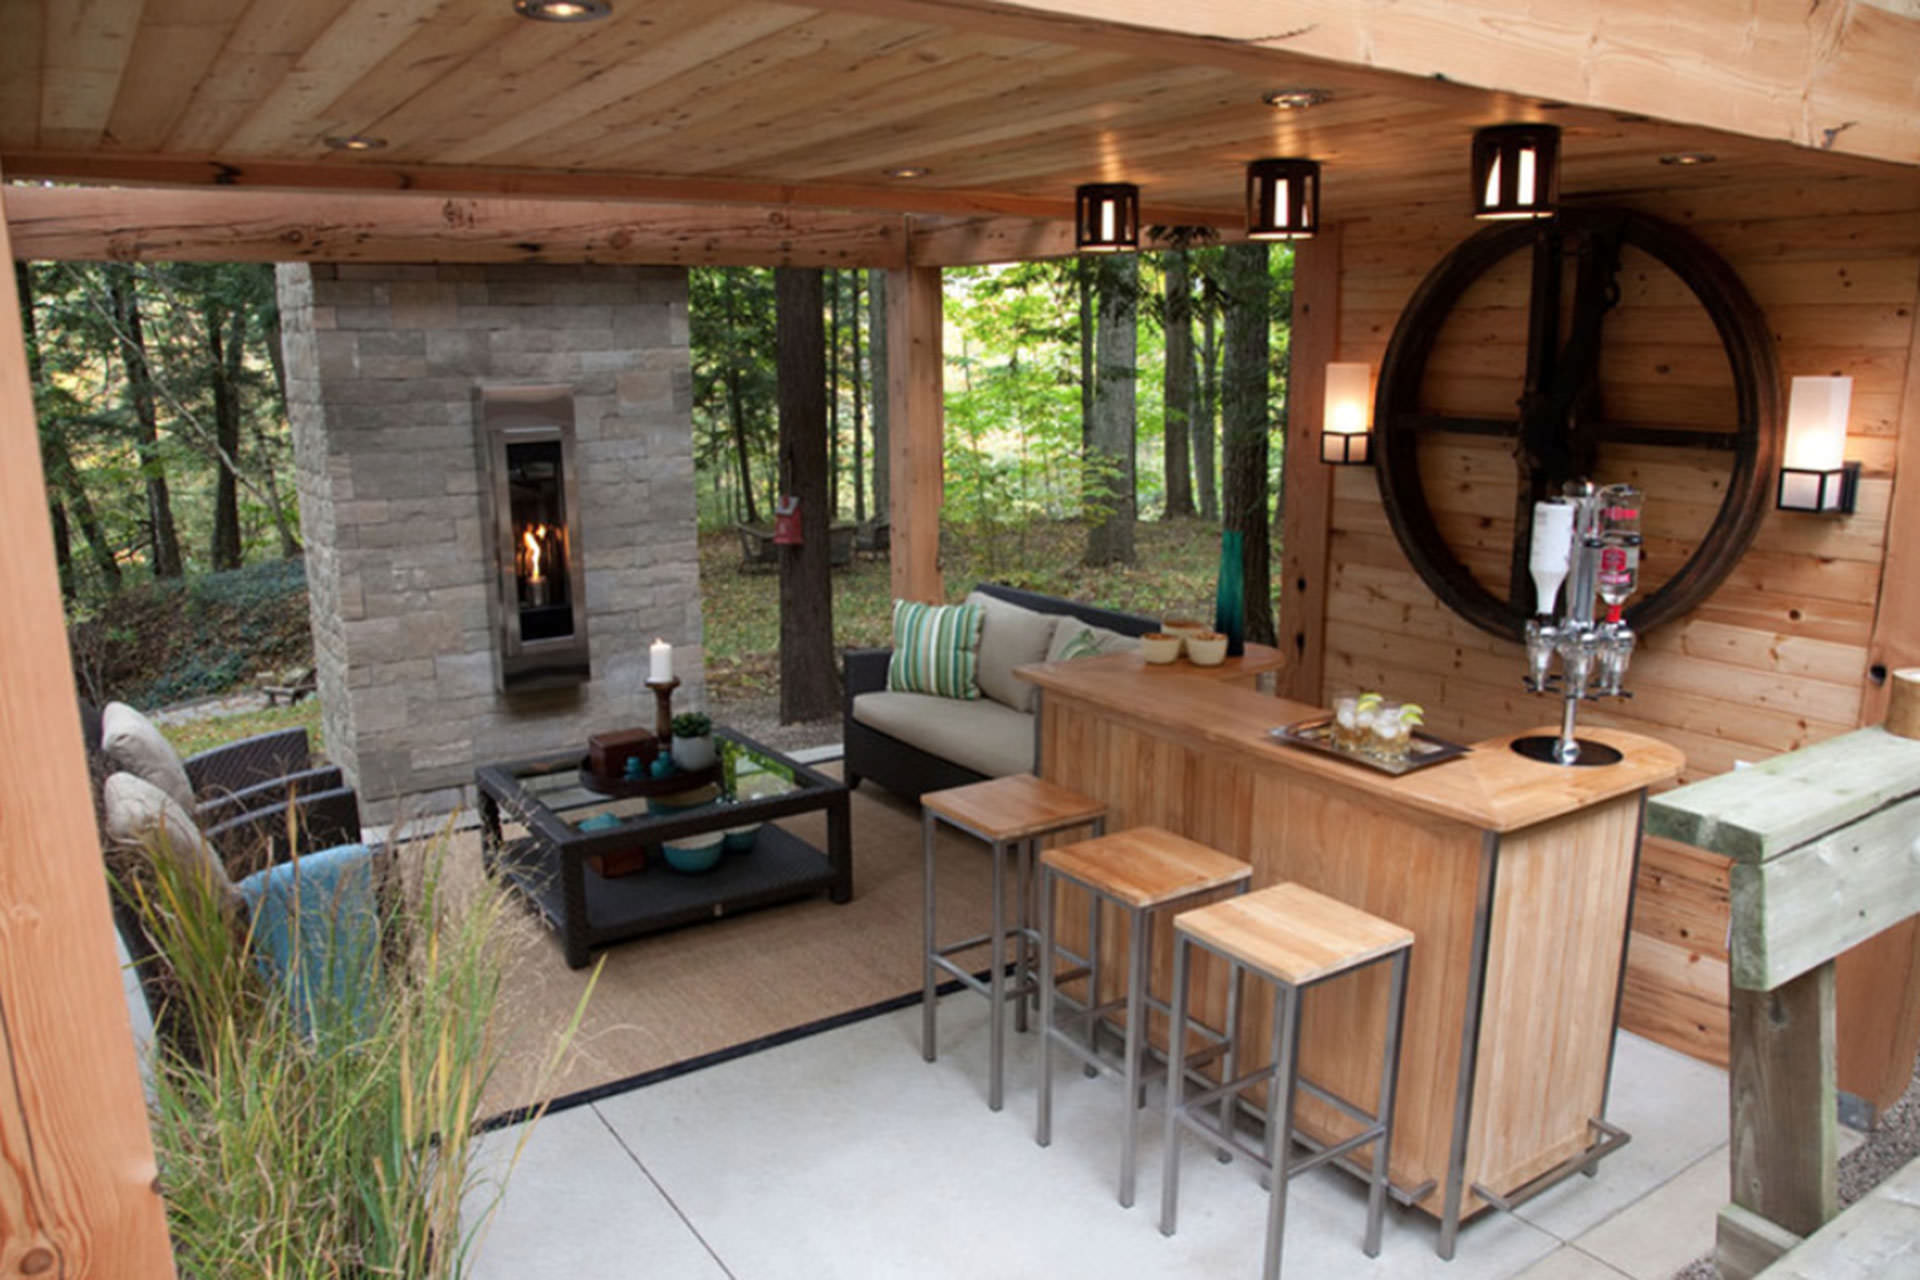 Superb Creating A Focal Point In Your Outdoor Space